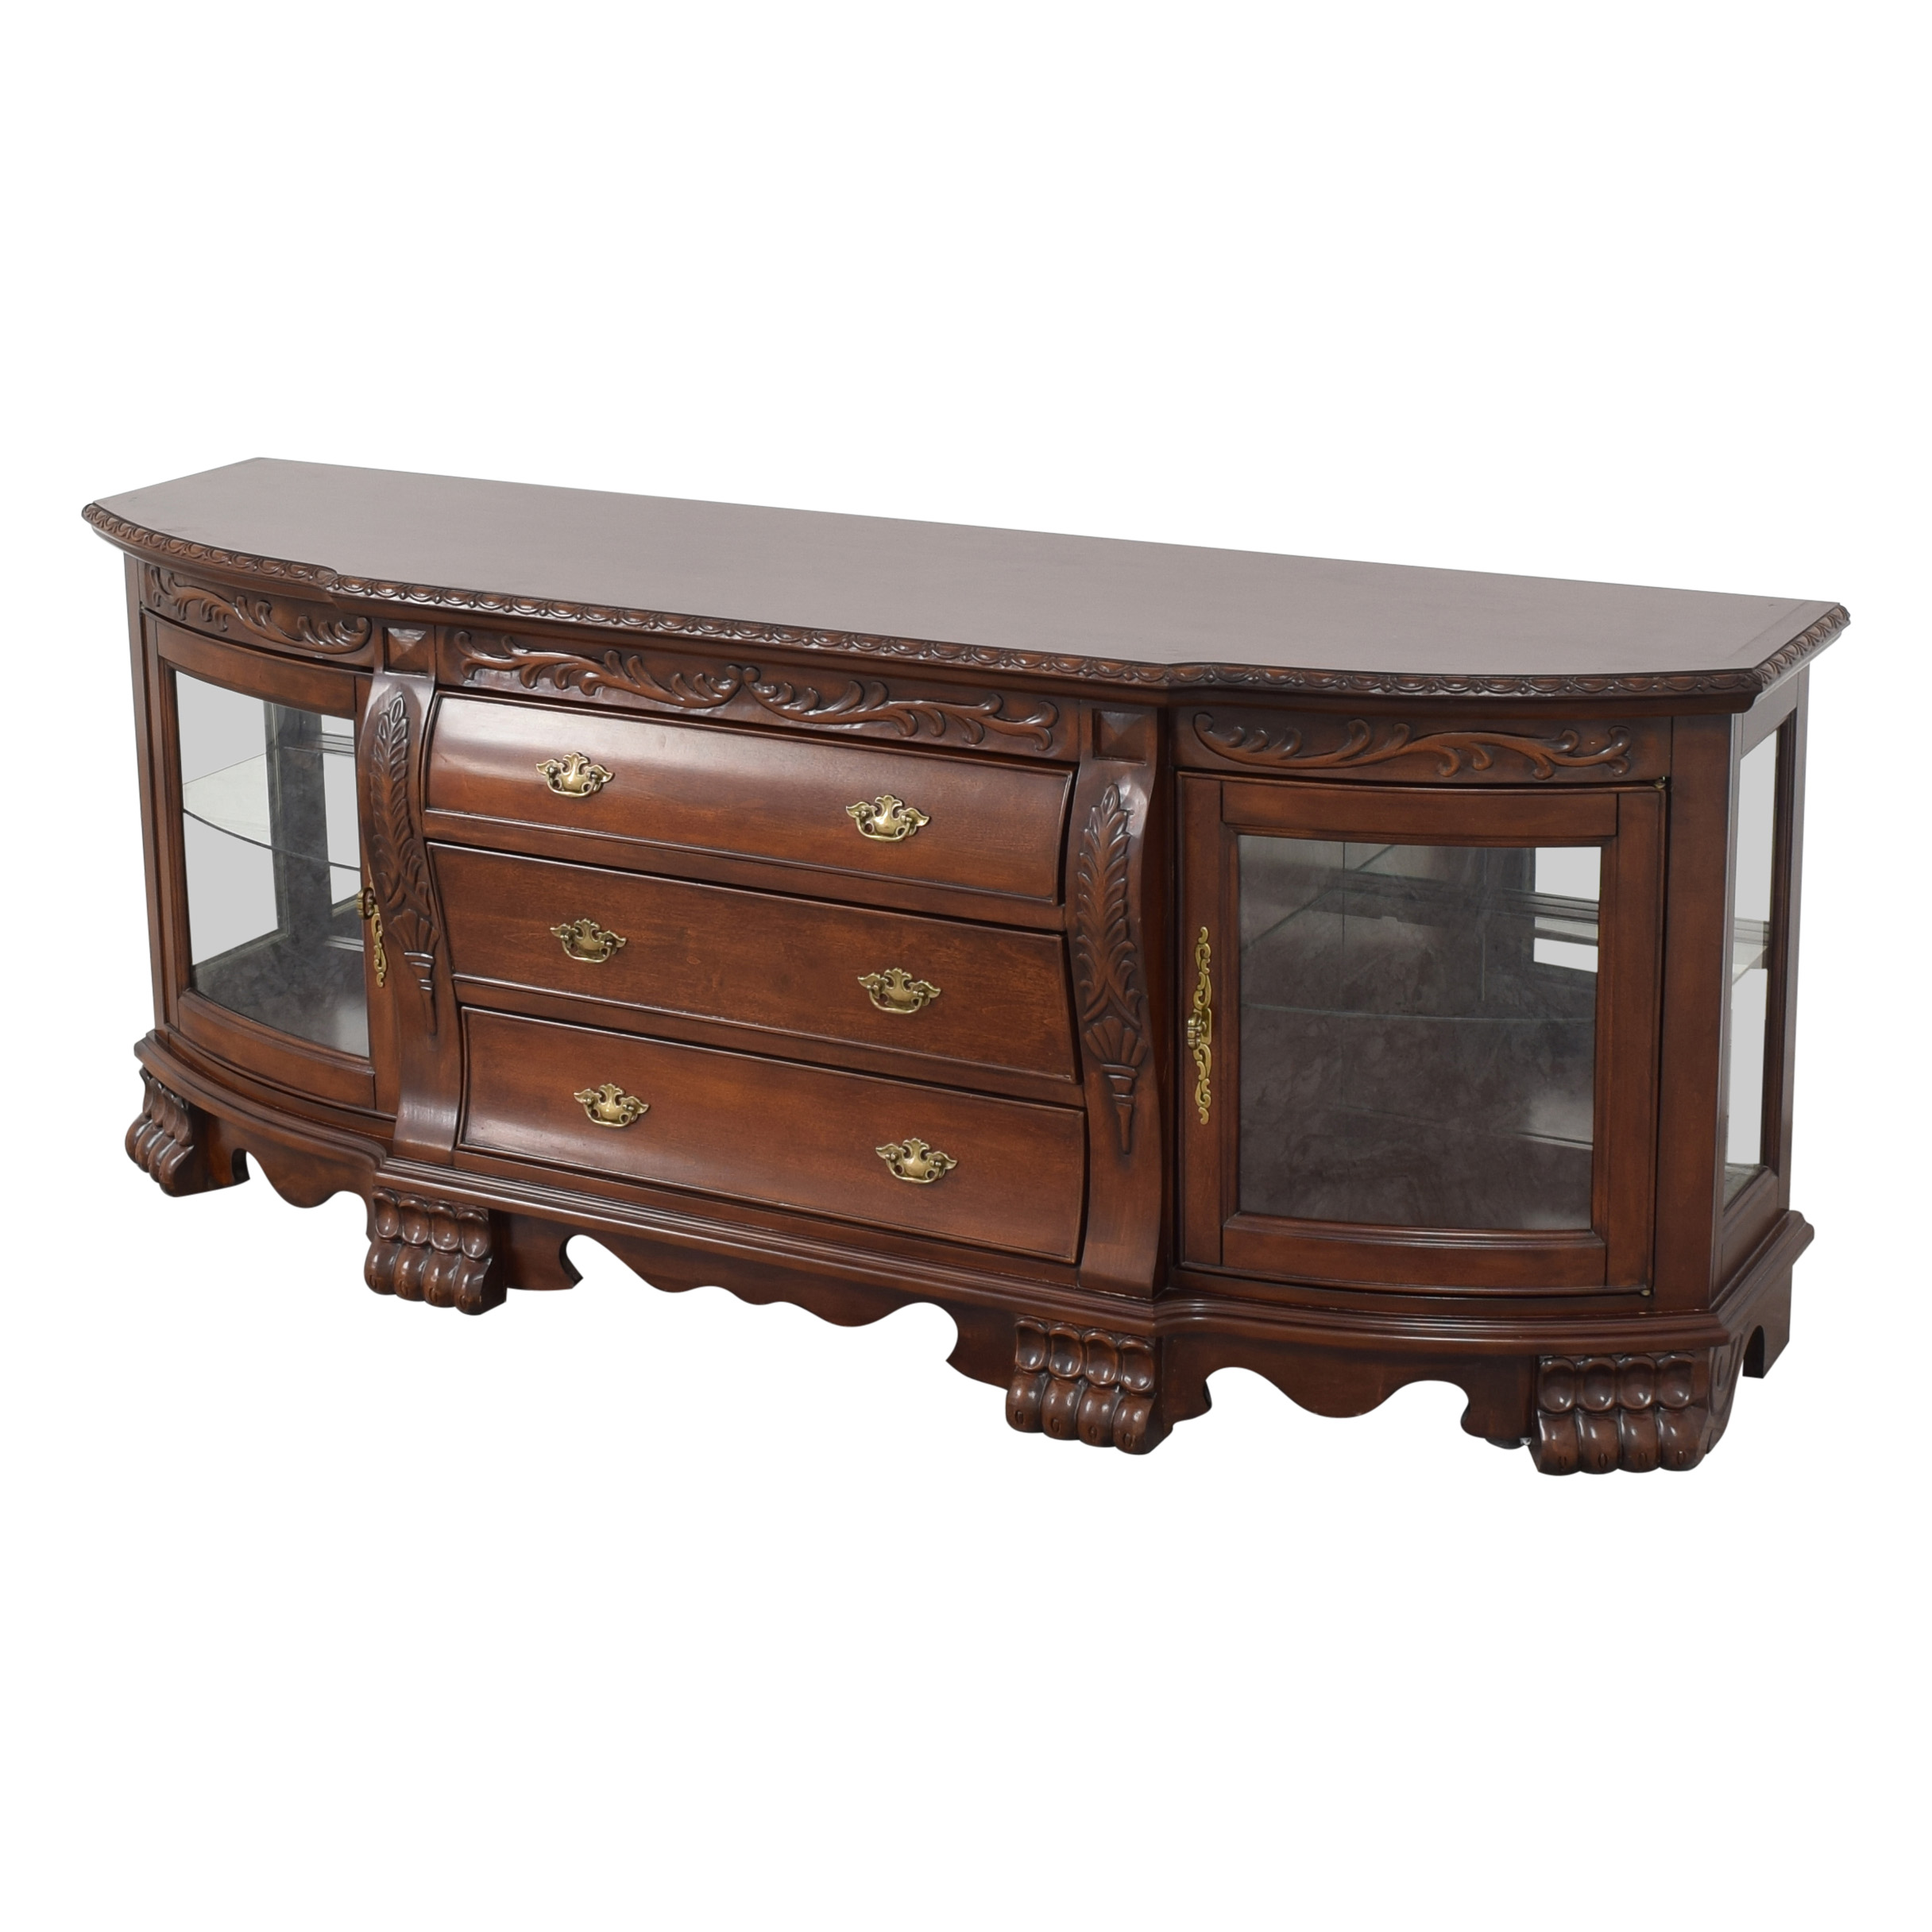 Three Drawer Sideboard / Cabinets & Sideboards